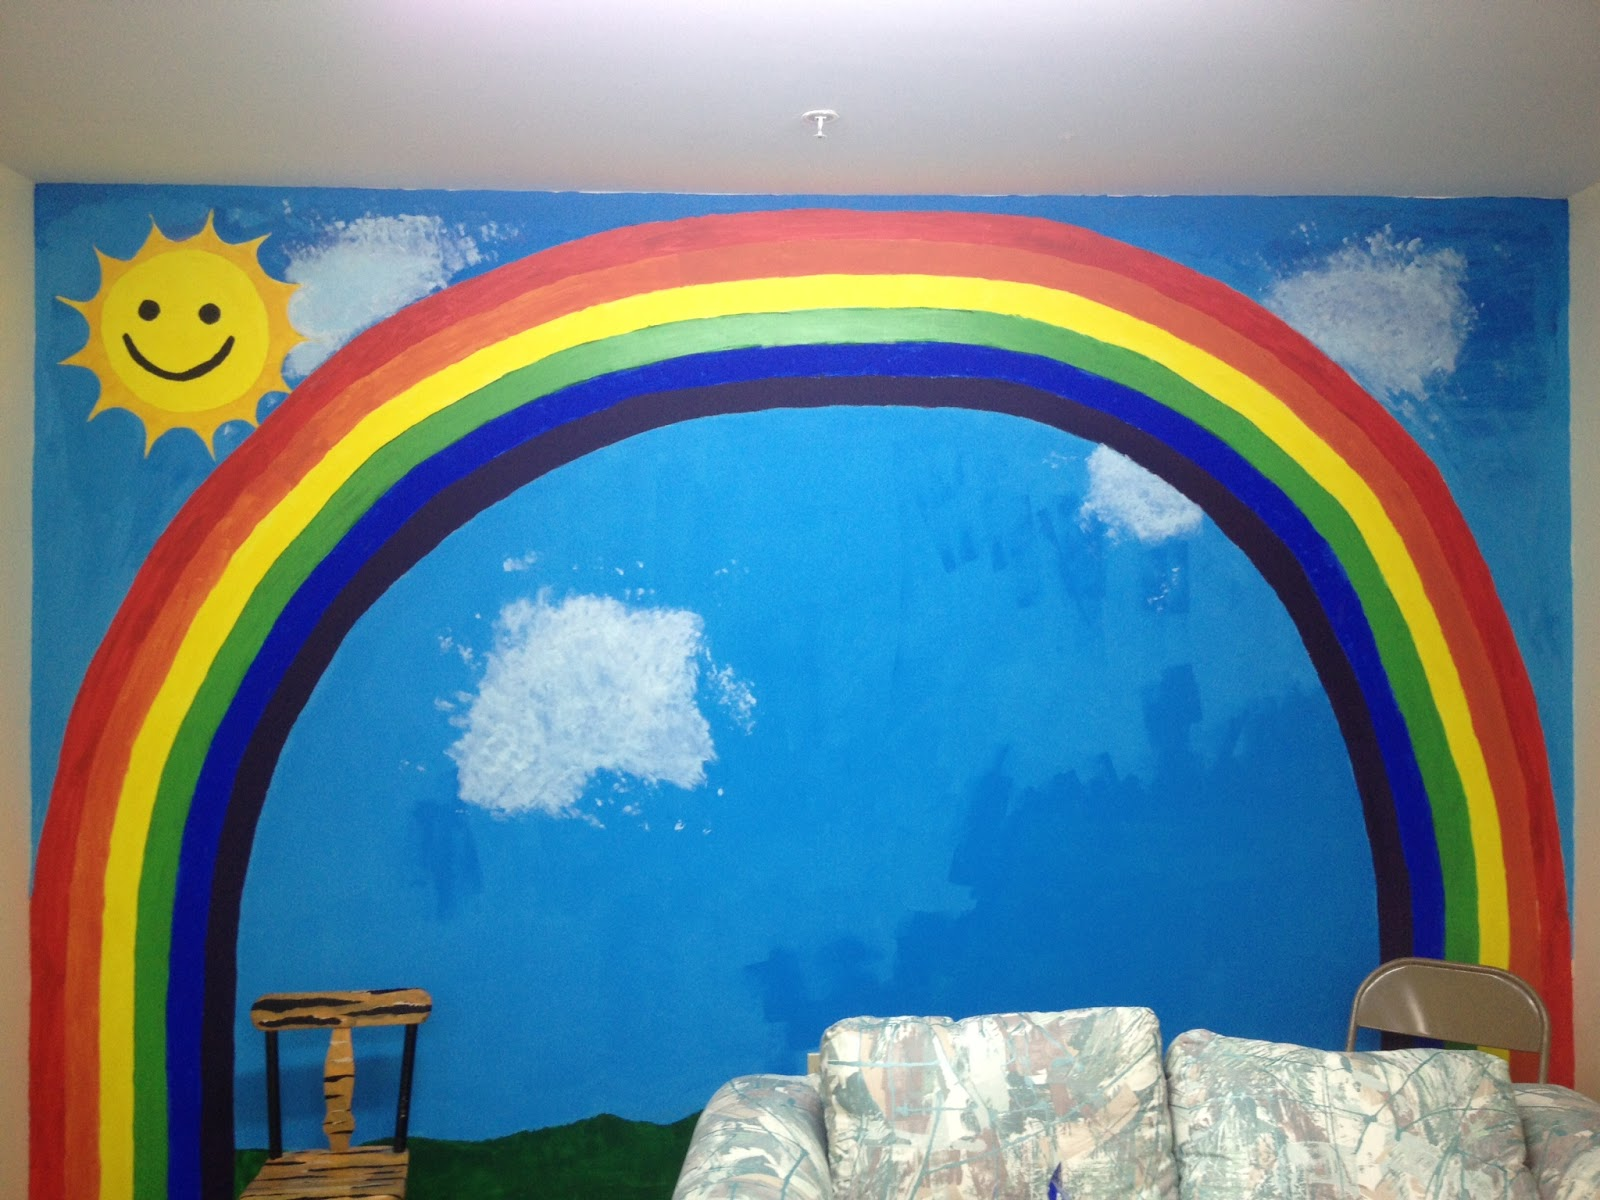 I Taught The Children How To Paint Their Hands And Make Handprints On The  Wall In The Nursery. The Older Children Wrote Their Names On The Mural ... Part 71